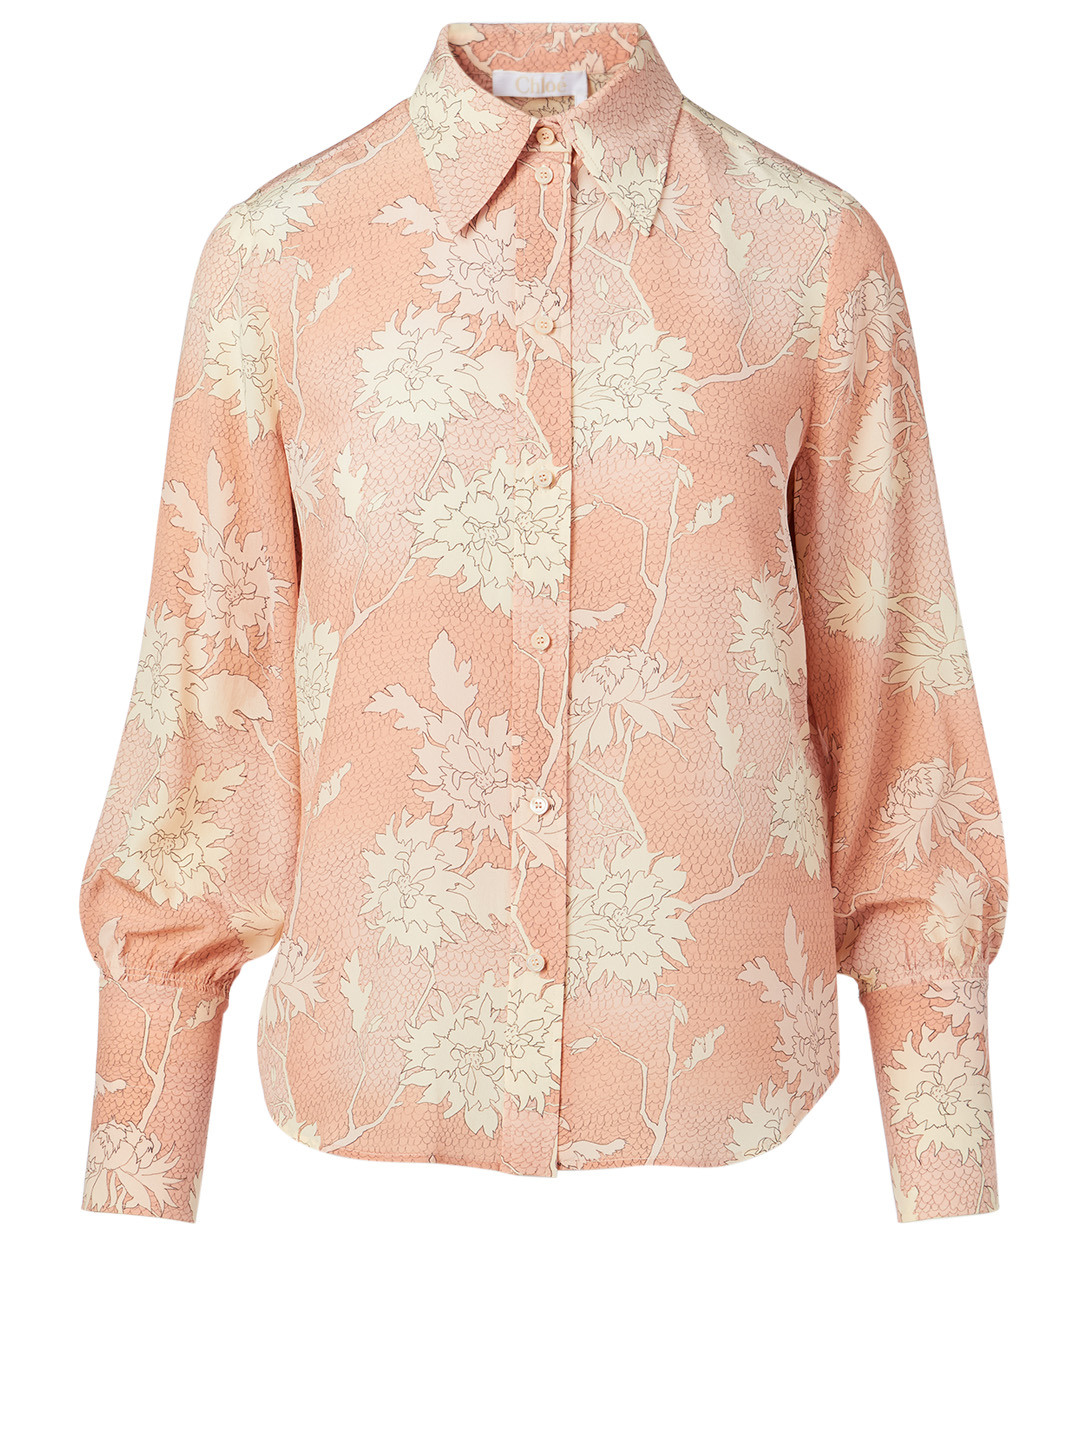 CHLOÉ Silk Shirt In Floral Print Women's Pink